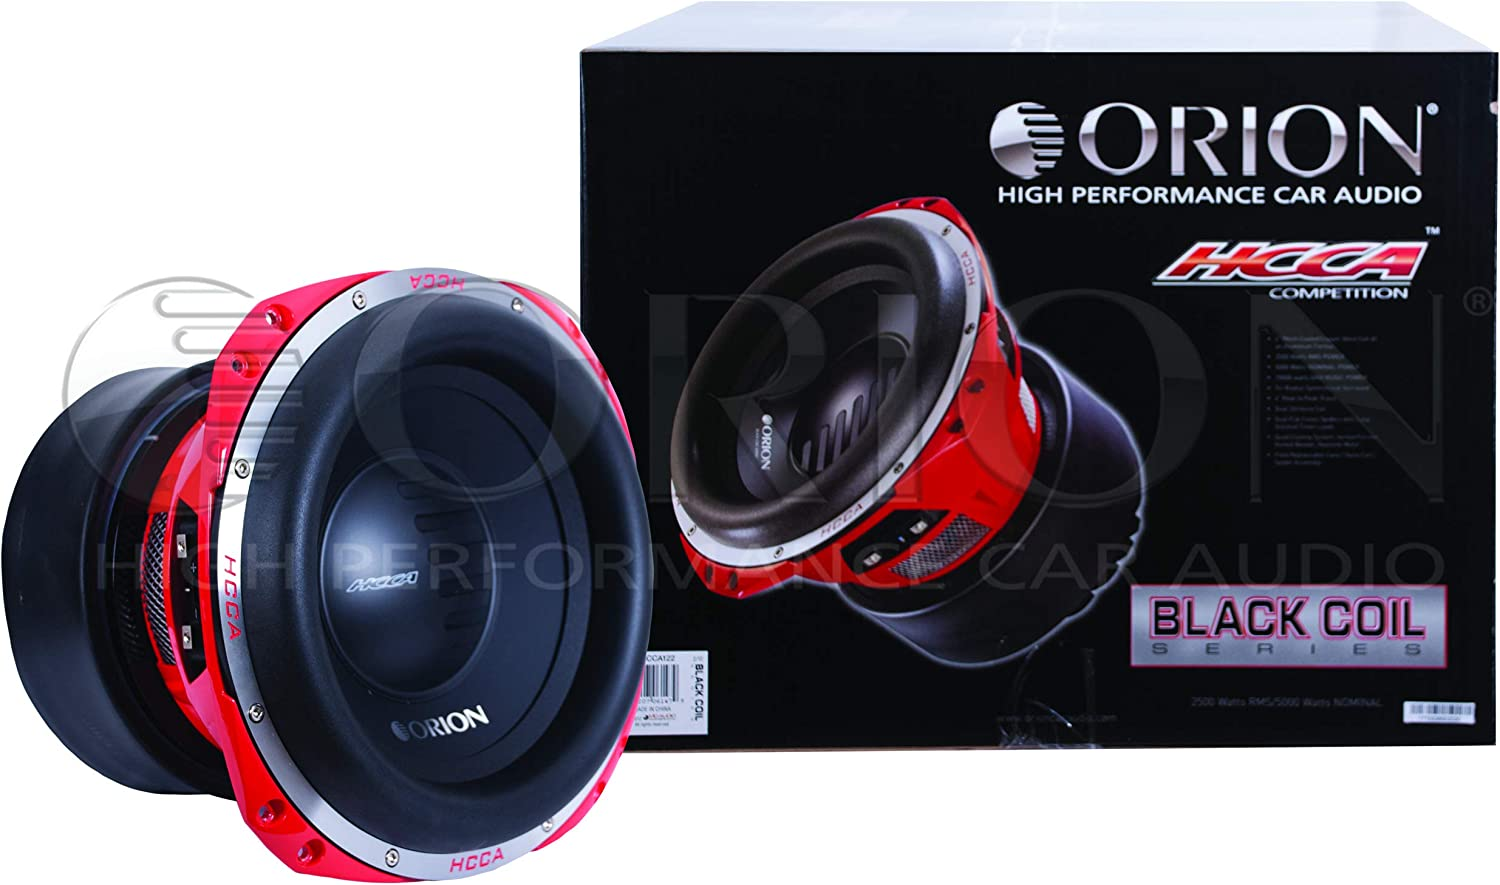 Orion HCCA 12 2000 Subwoofer